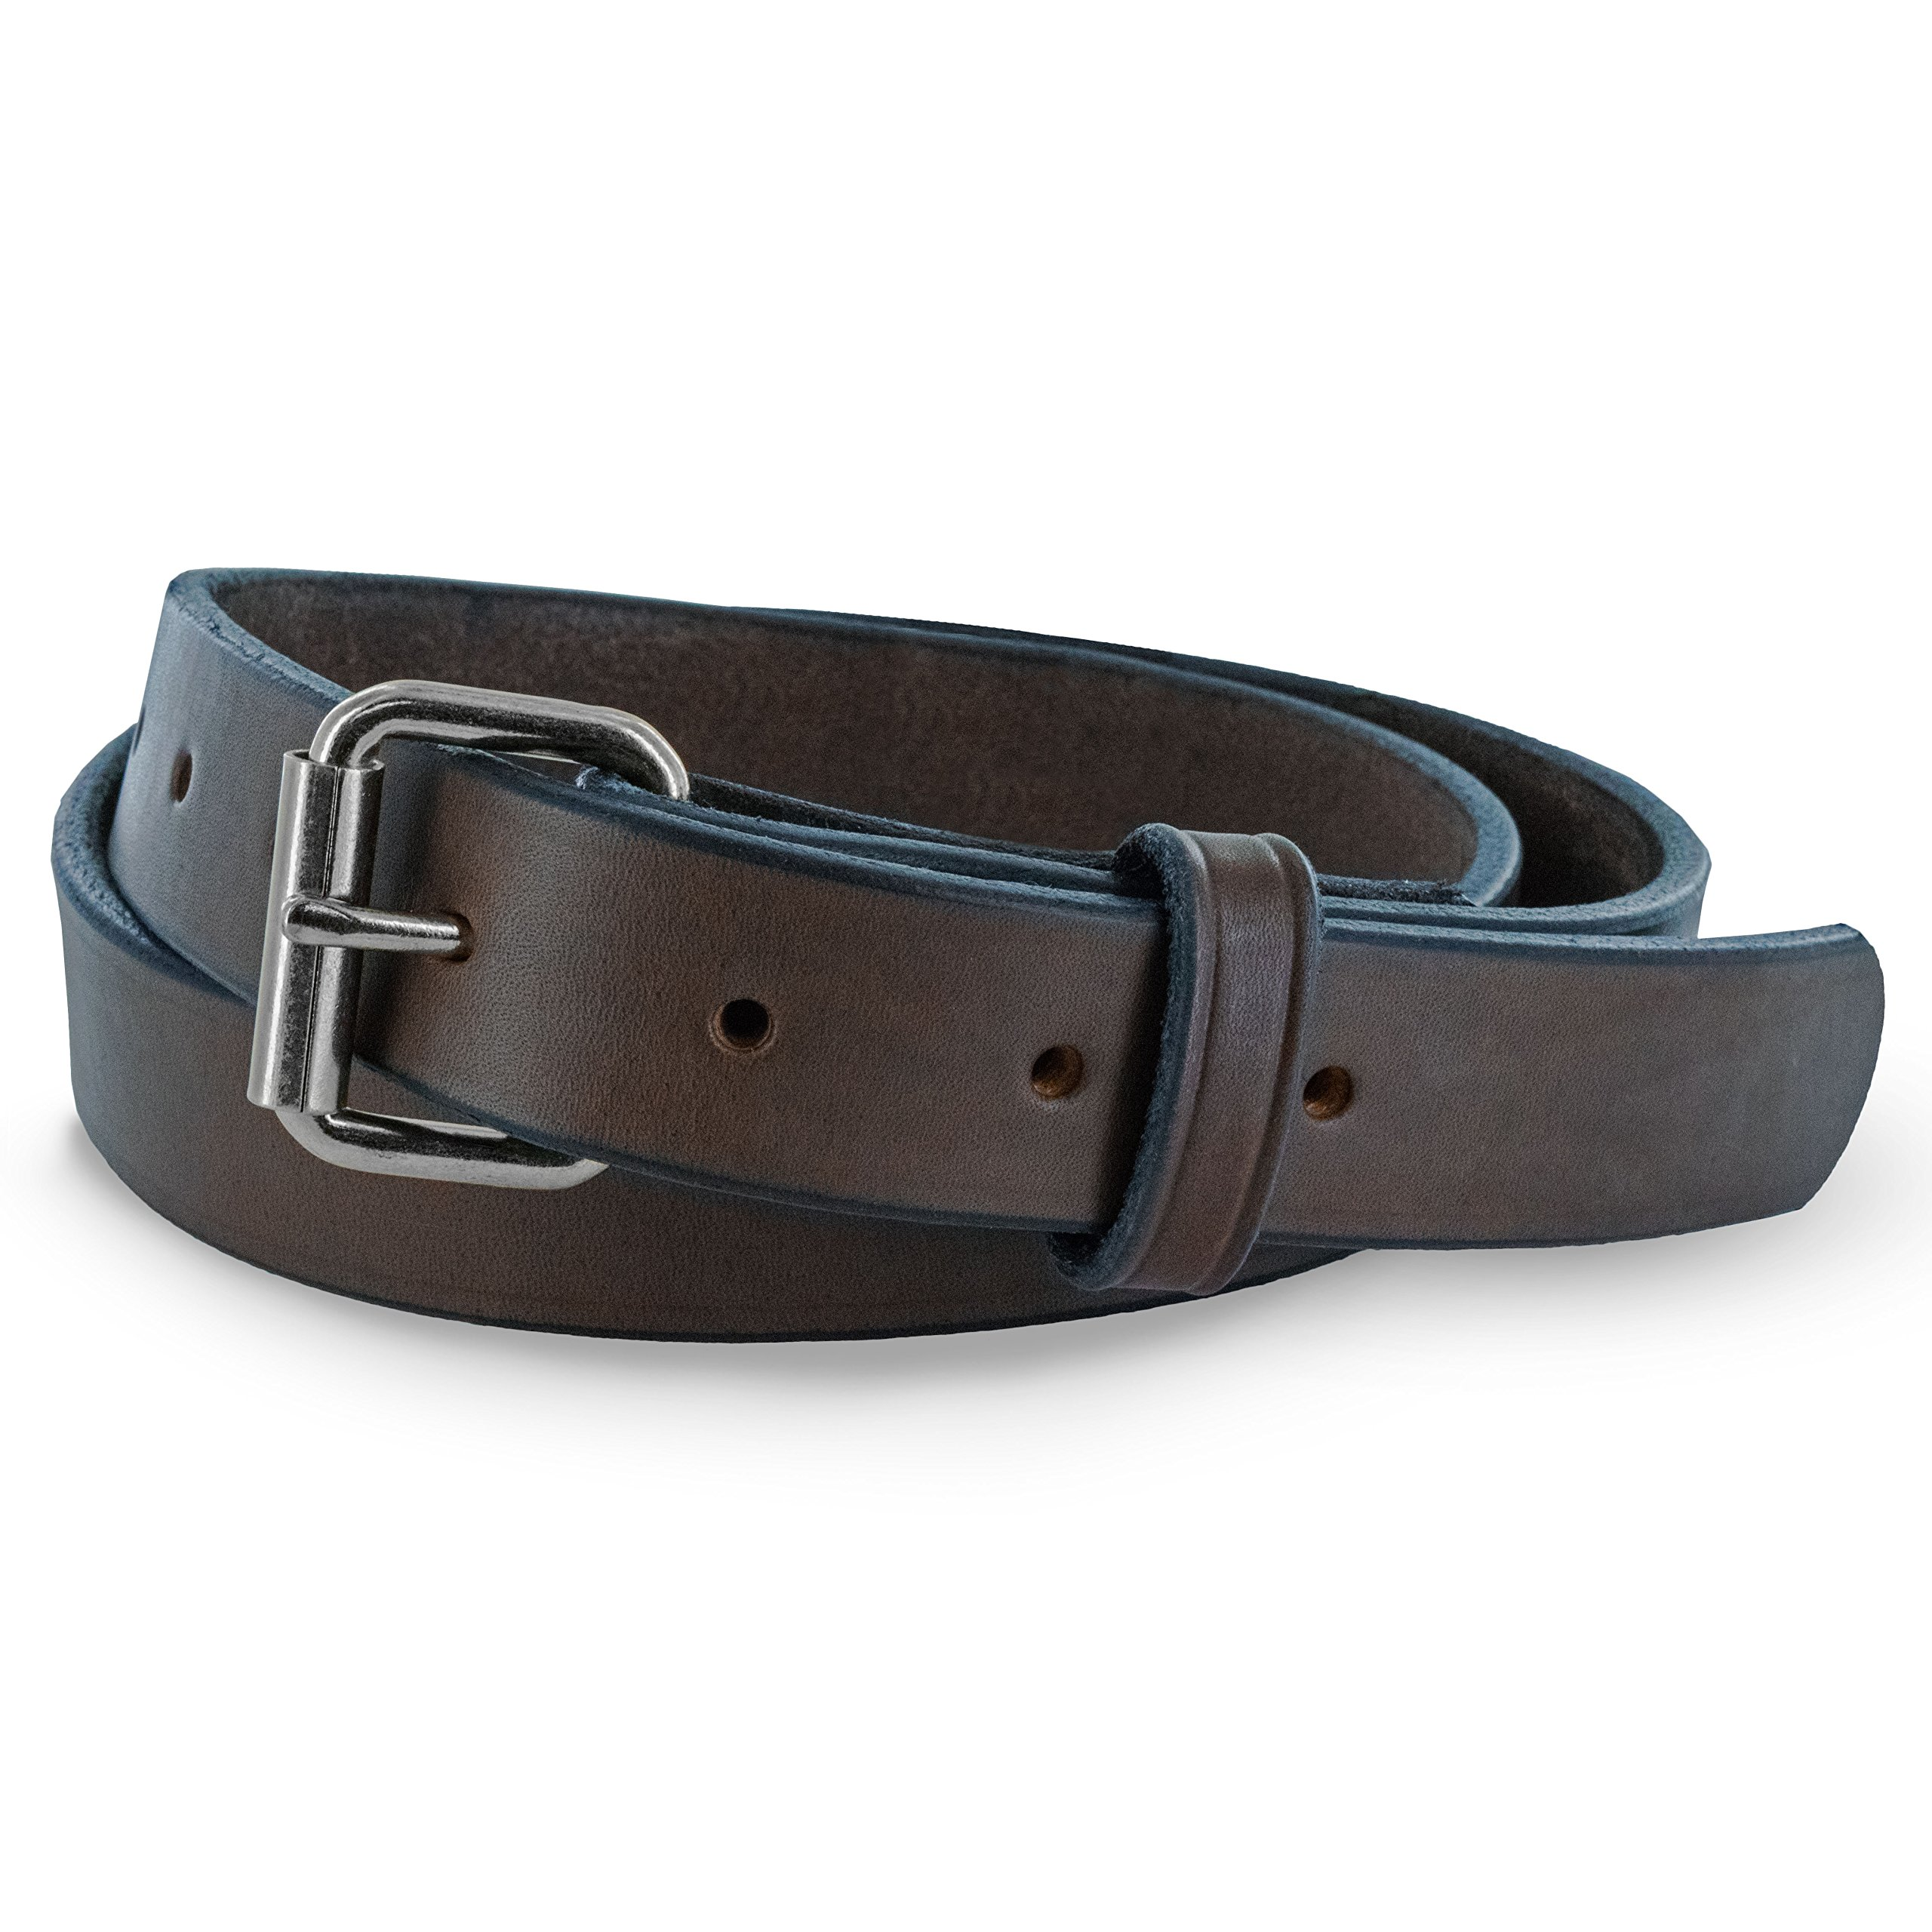 Hanks A320 1 1/4'' Deputy Belt - Brown - 34 by Hanks Belts